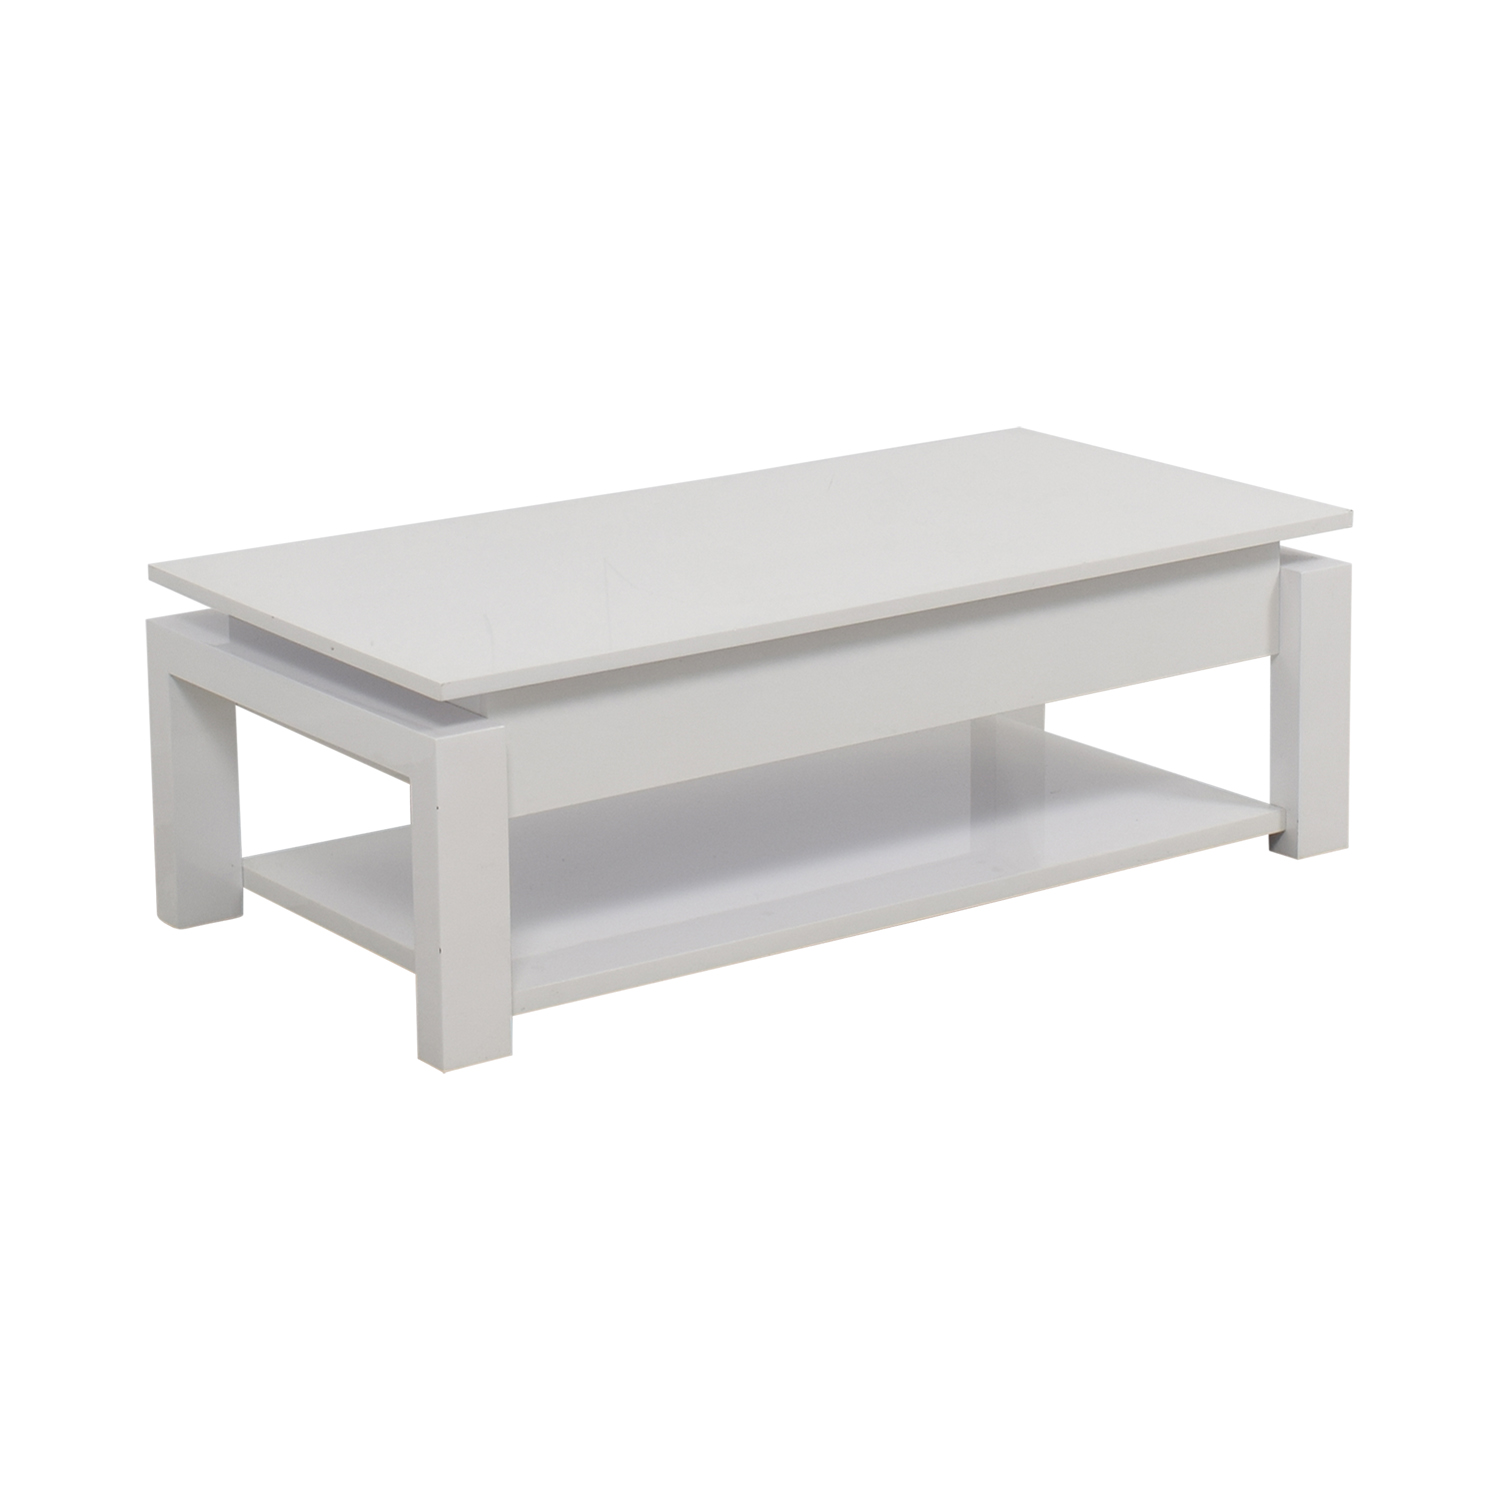 Best Coffee Tables 87 Off White Lift Top Coffee Table Tables